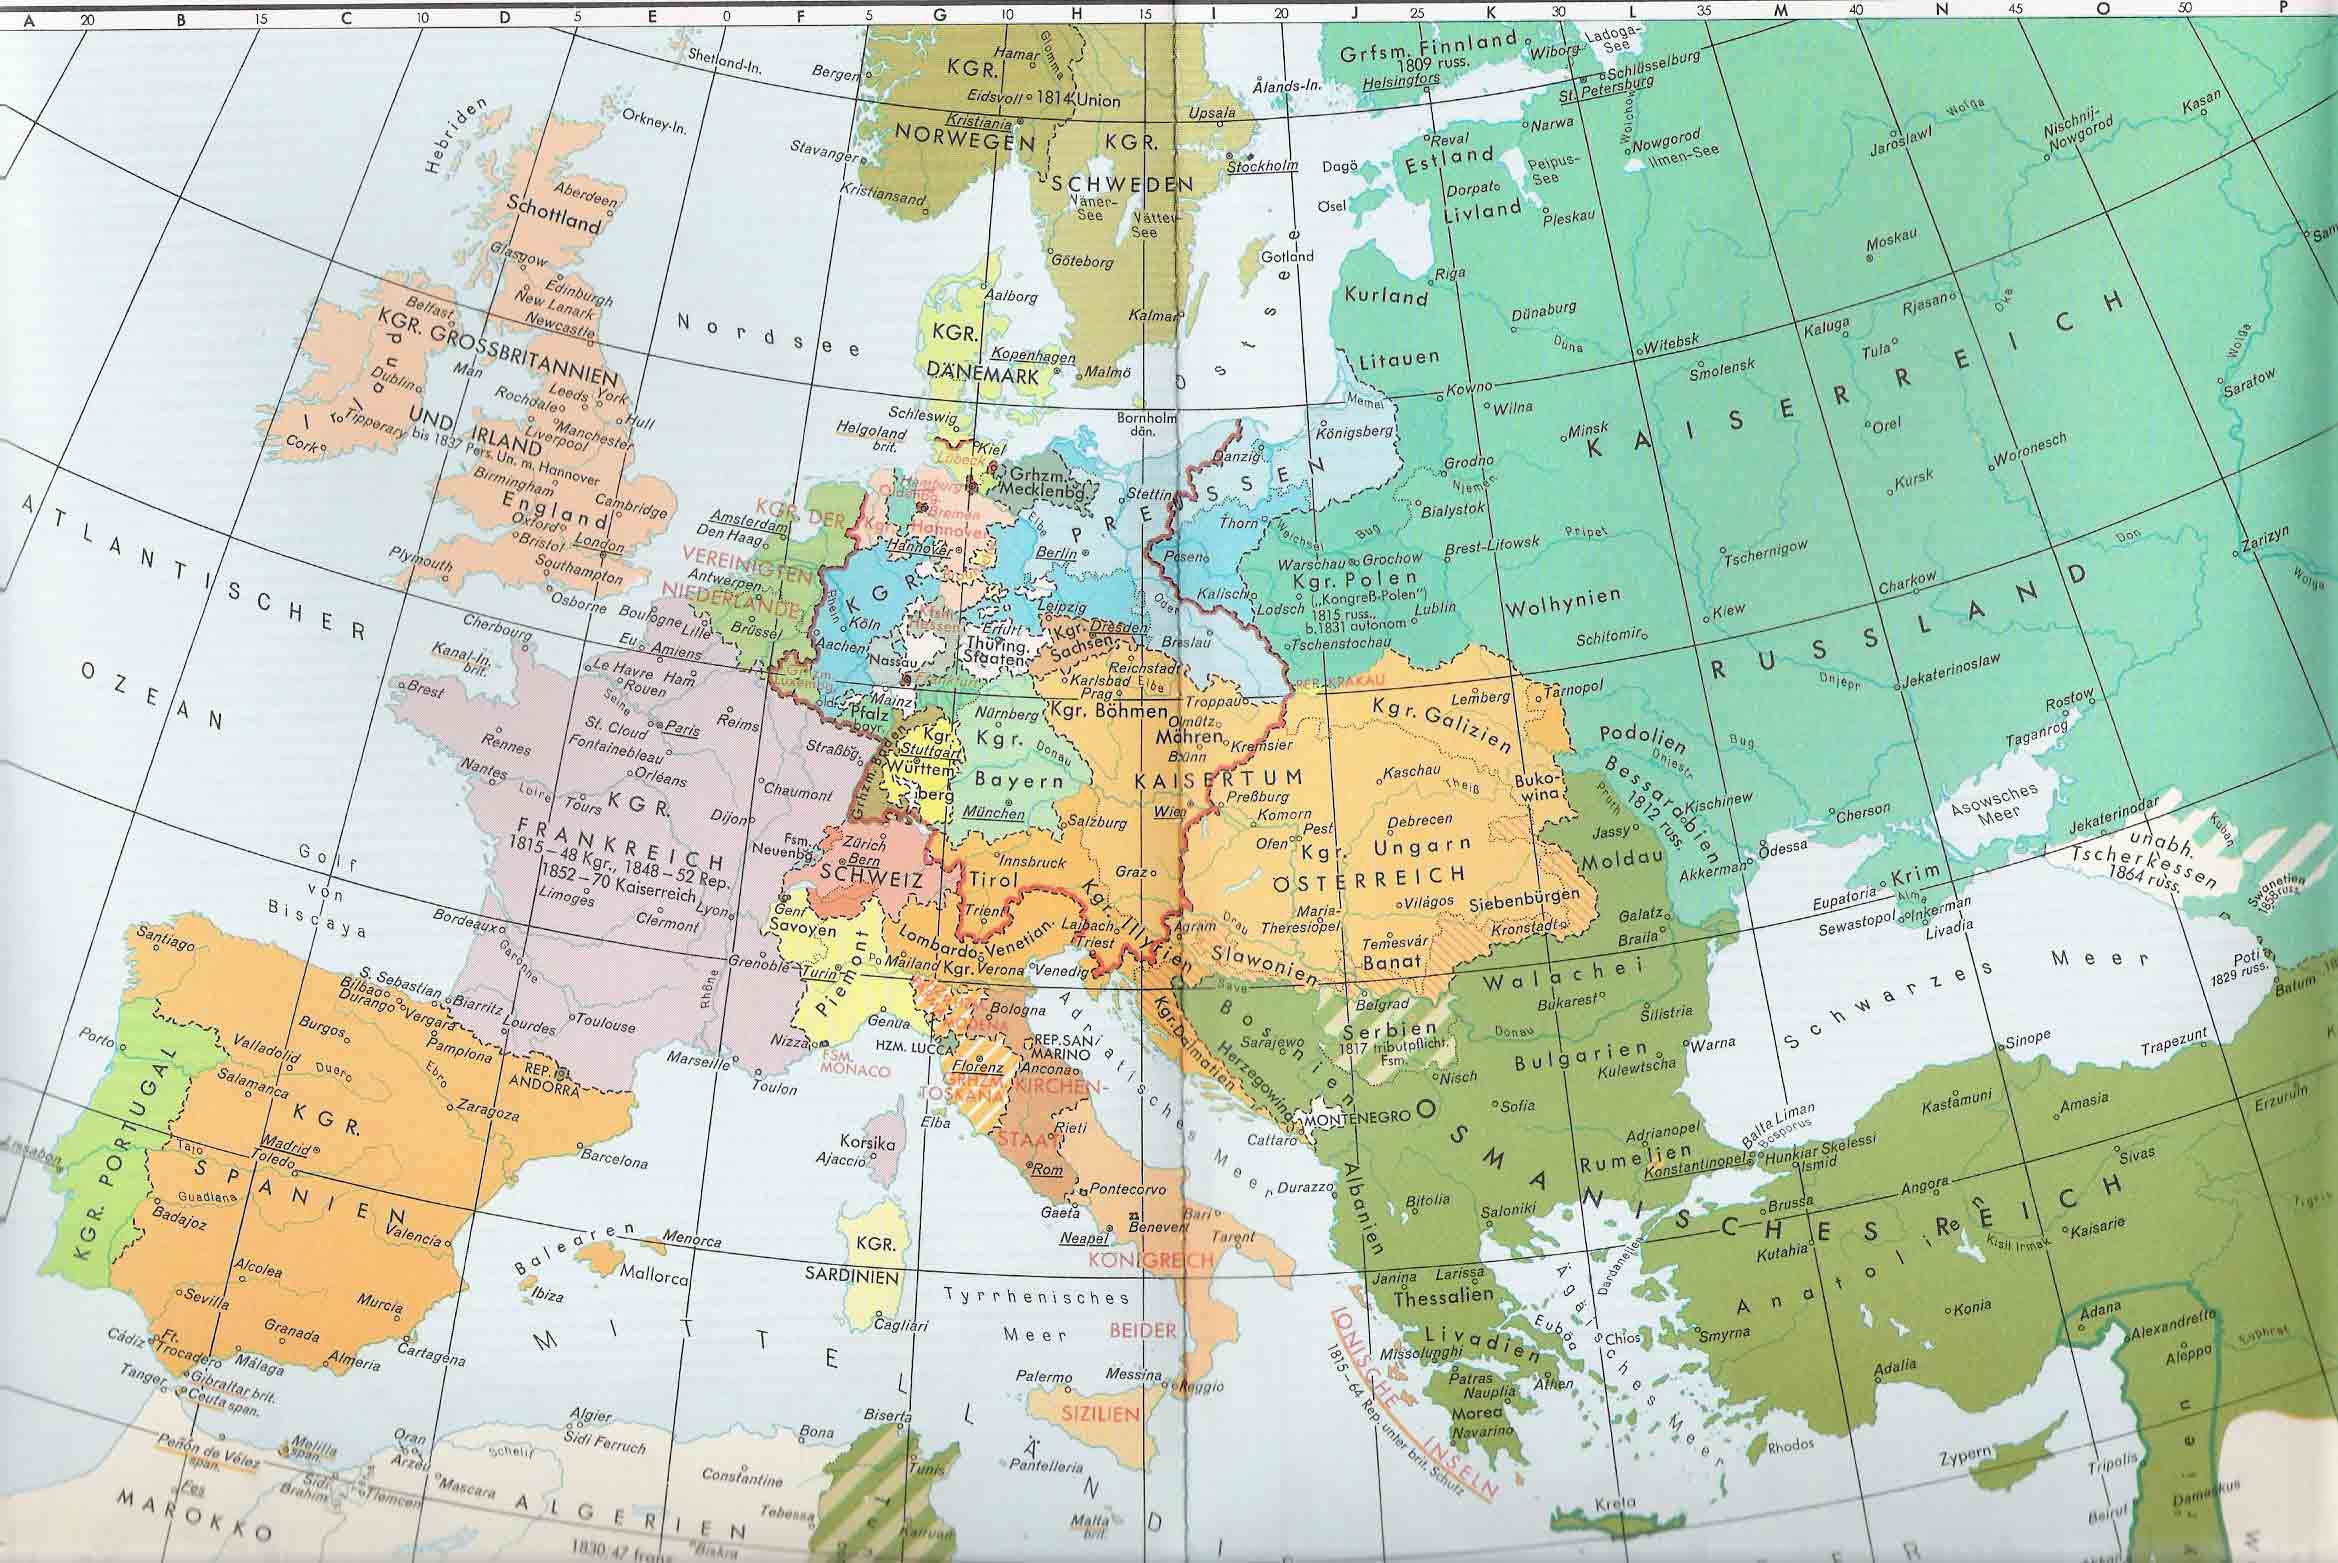 Europe in 1815 after the Congress of Vienna Full size